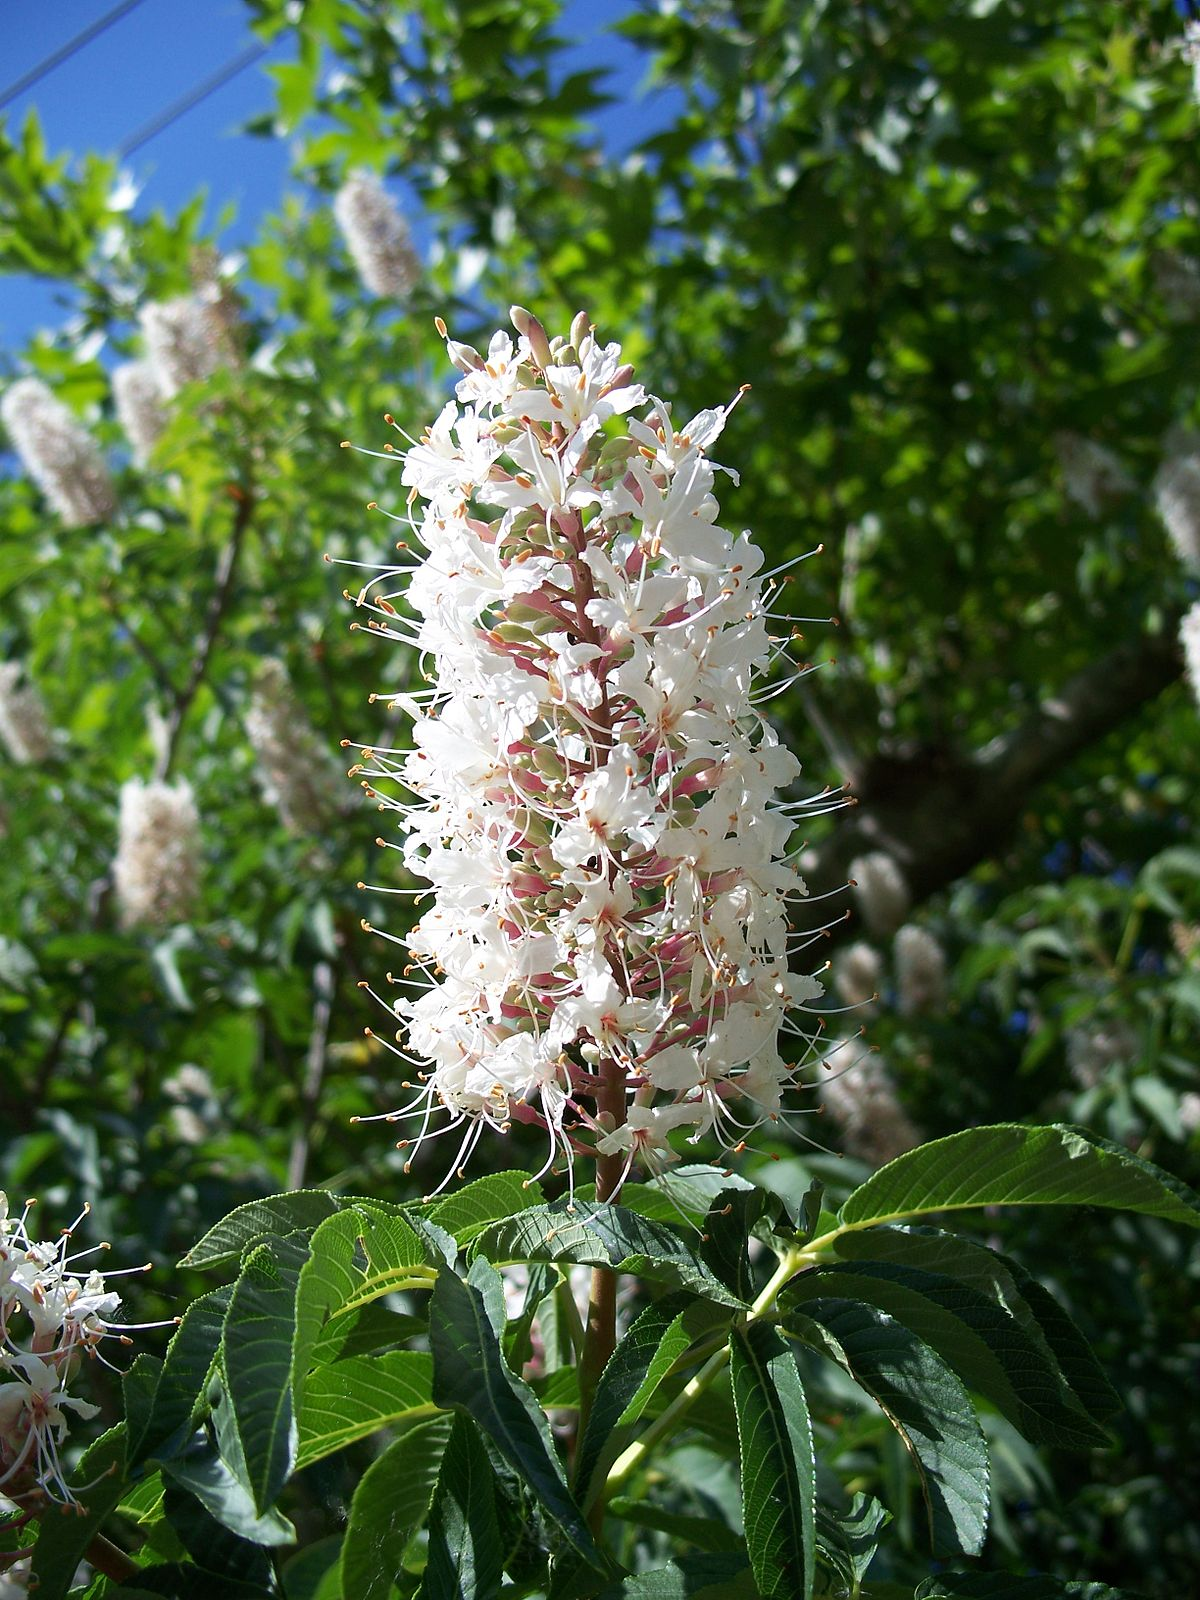 Usda Plants Database Entry For Asclepias